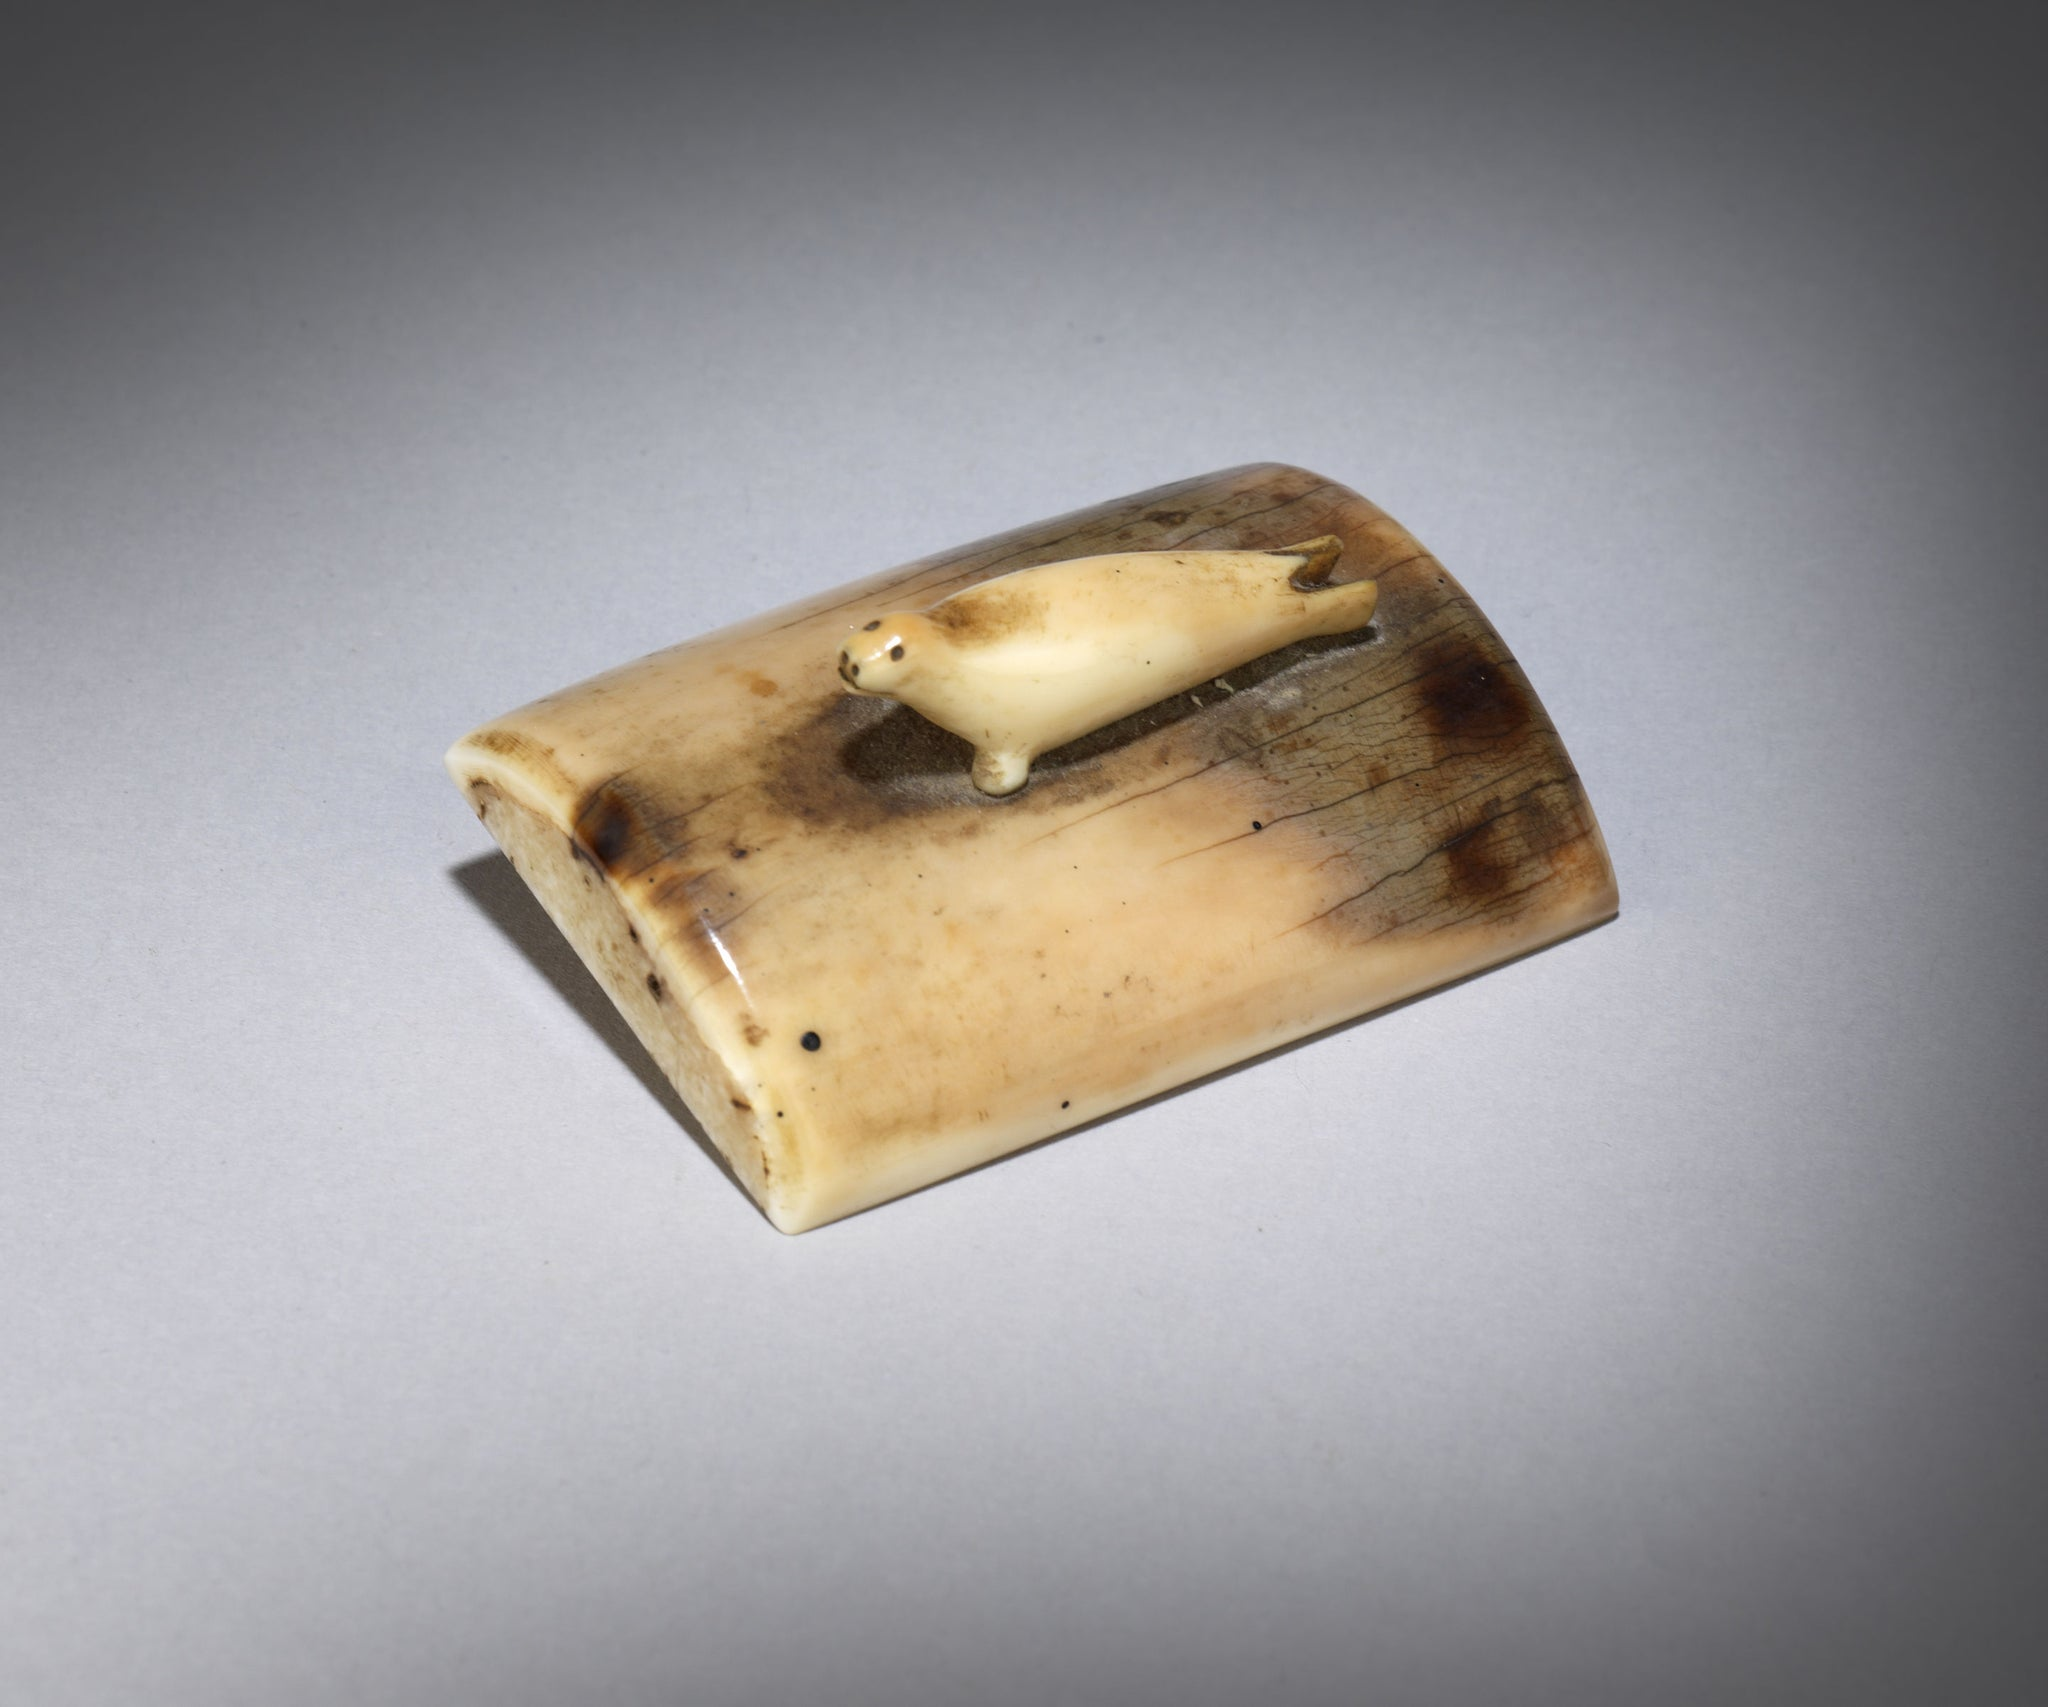 Rare Inuit Miniature Carving of a Seal Pup